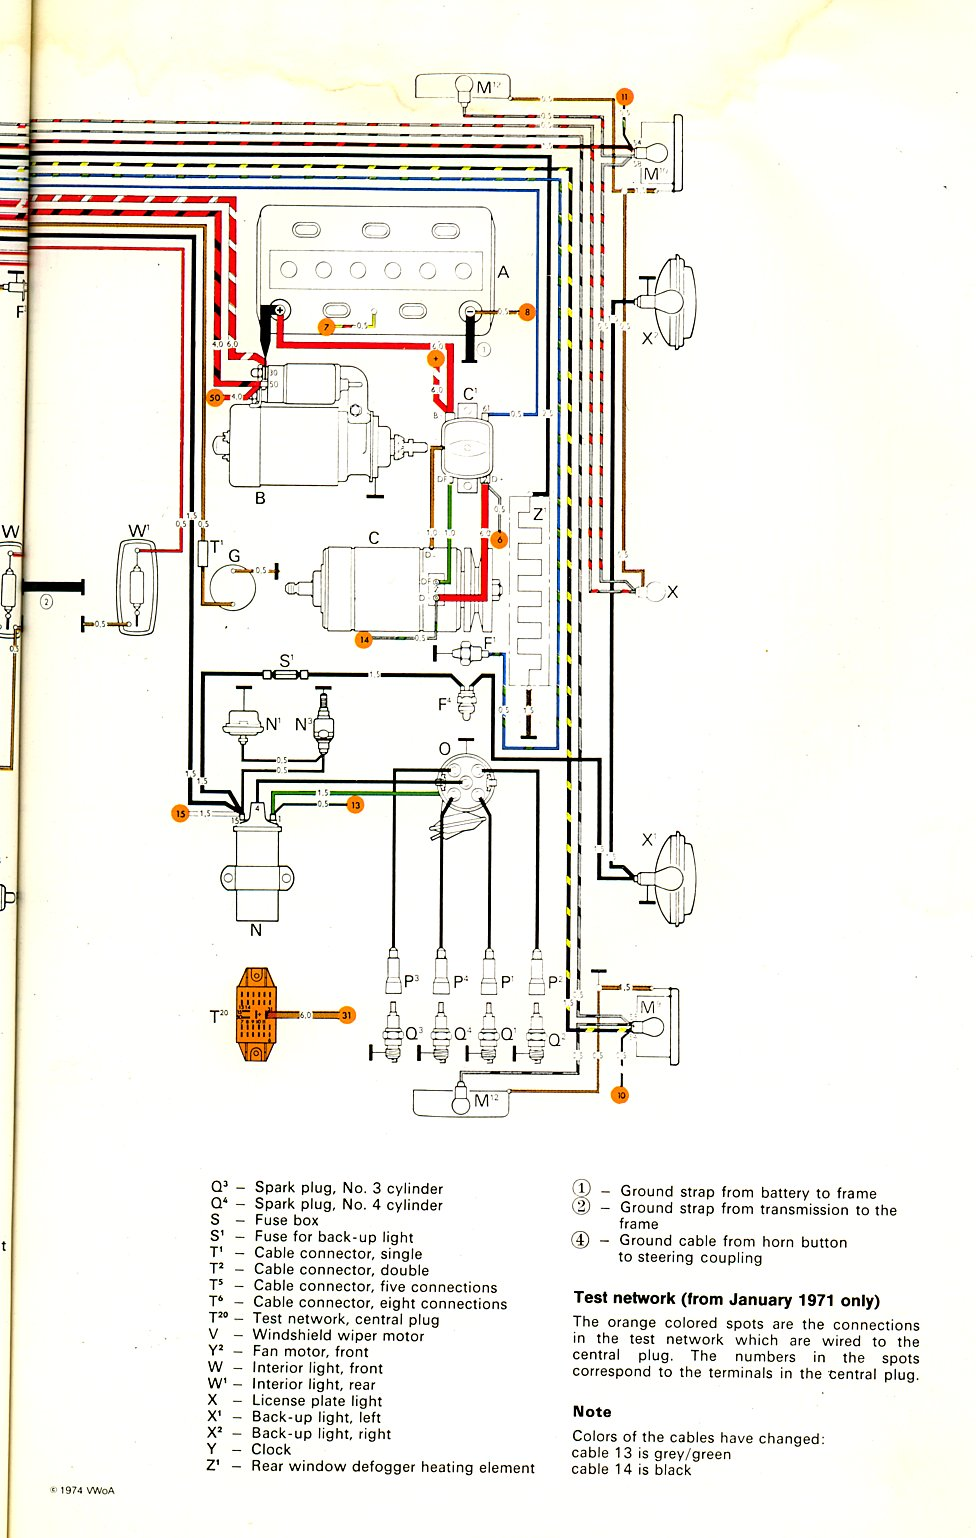 Fan Wiring Diagram Likewise Vanagon Radiator Electric Window Together With A Thesamba Com Type 2 Diagrams Rh